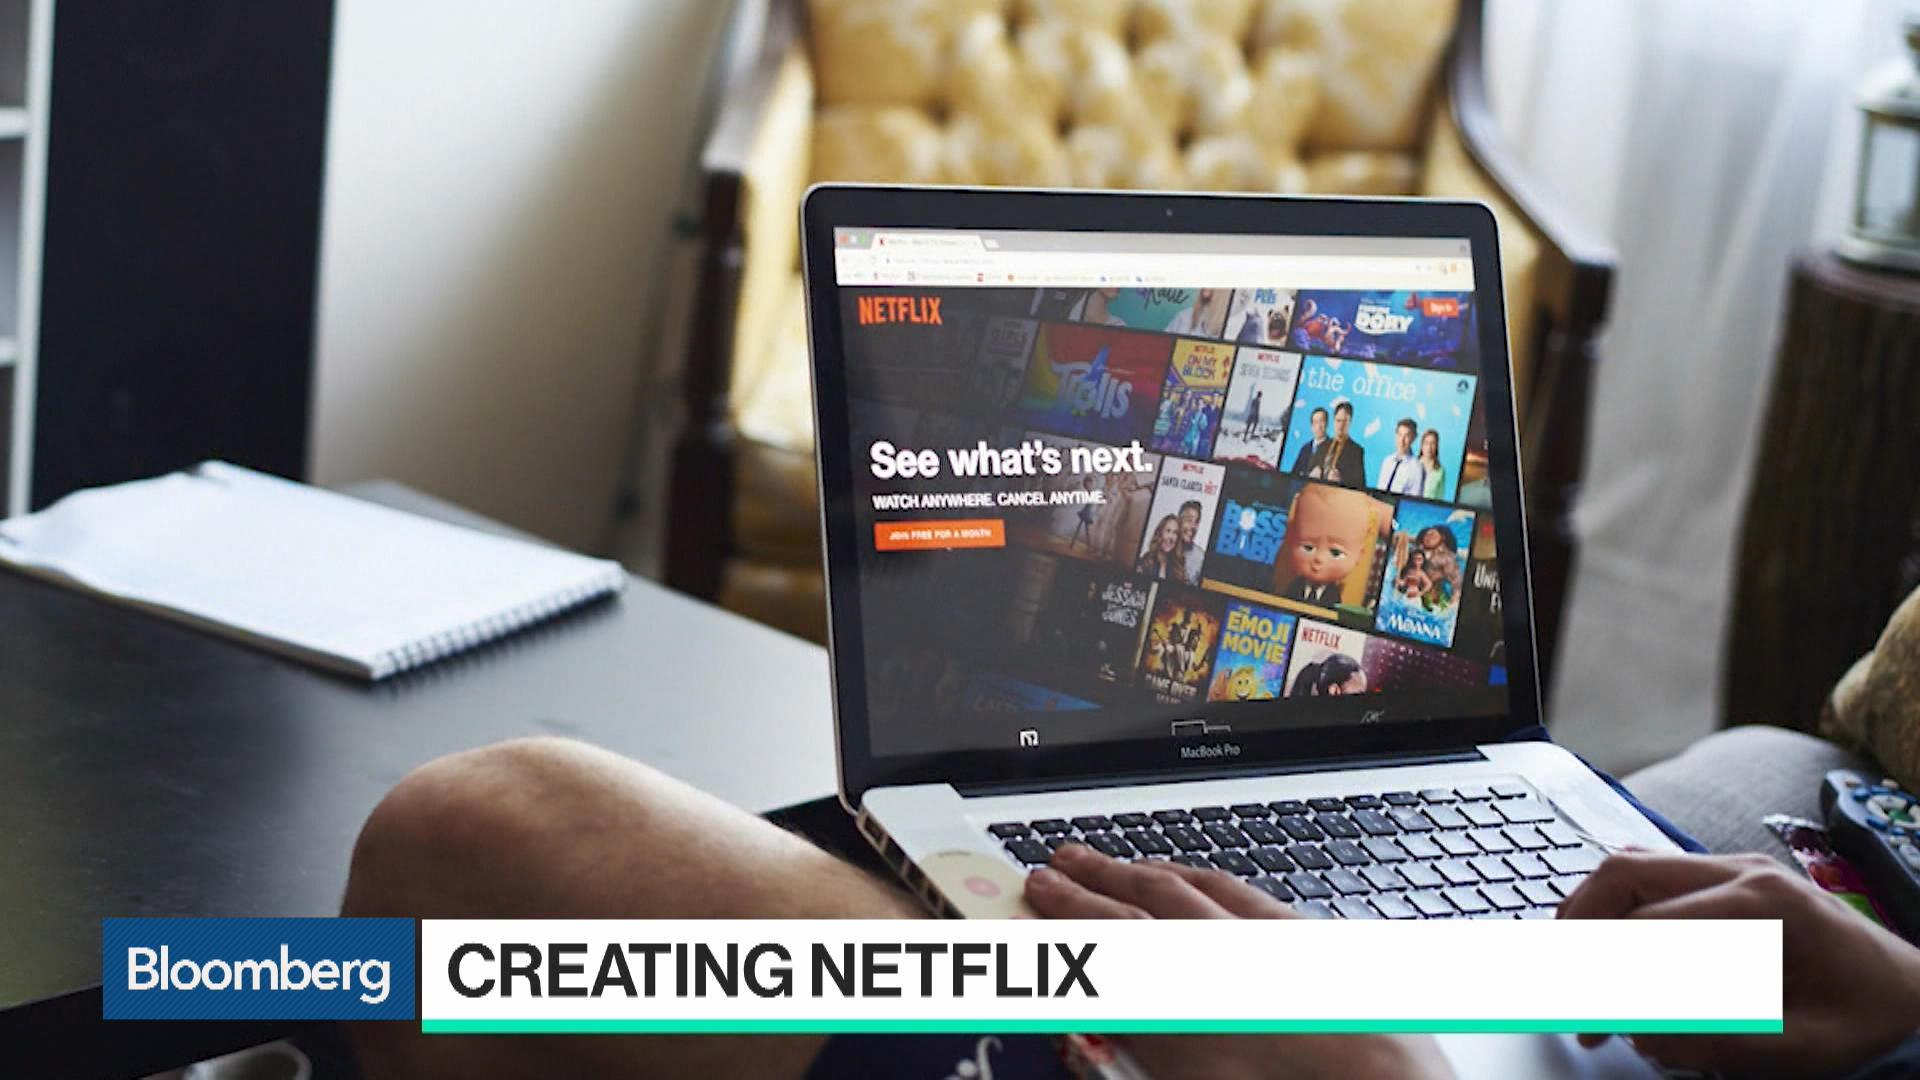 Netflix Co-Founder Marc Randolph Weighs In on Streaming Wars